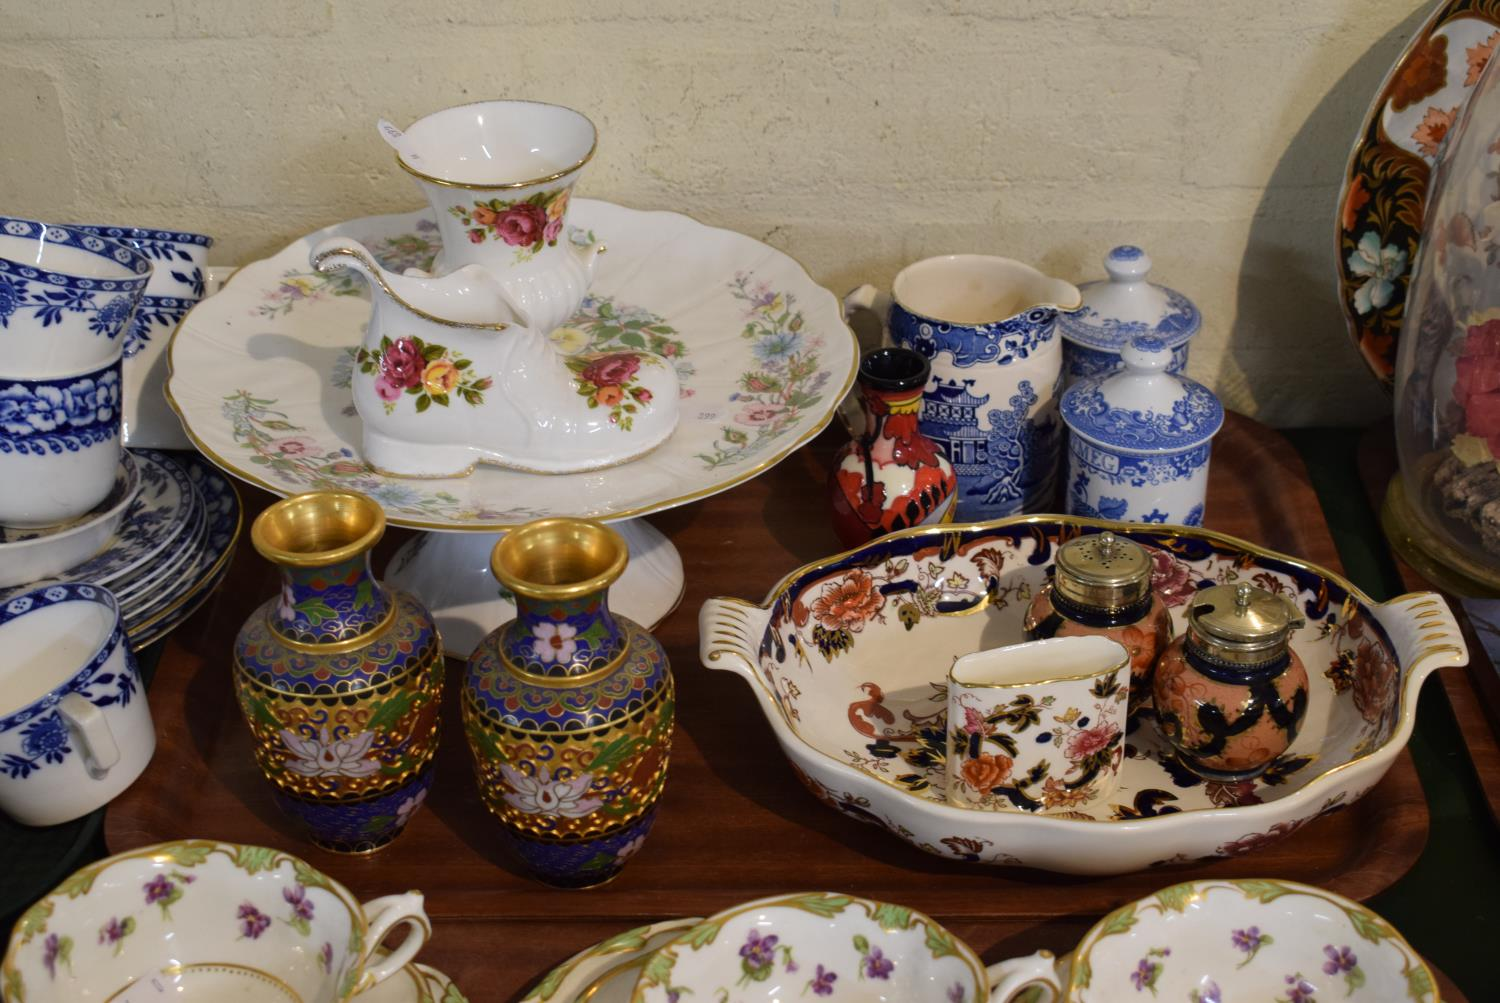 Lot 191 - A Tray Containing Various Ceramics to Include Masons Mandalay, Aynsley Cottage Garden, Spode Blue